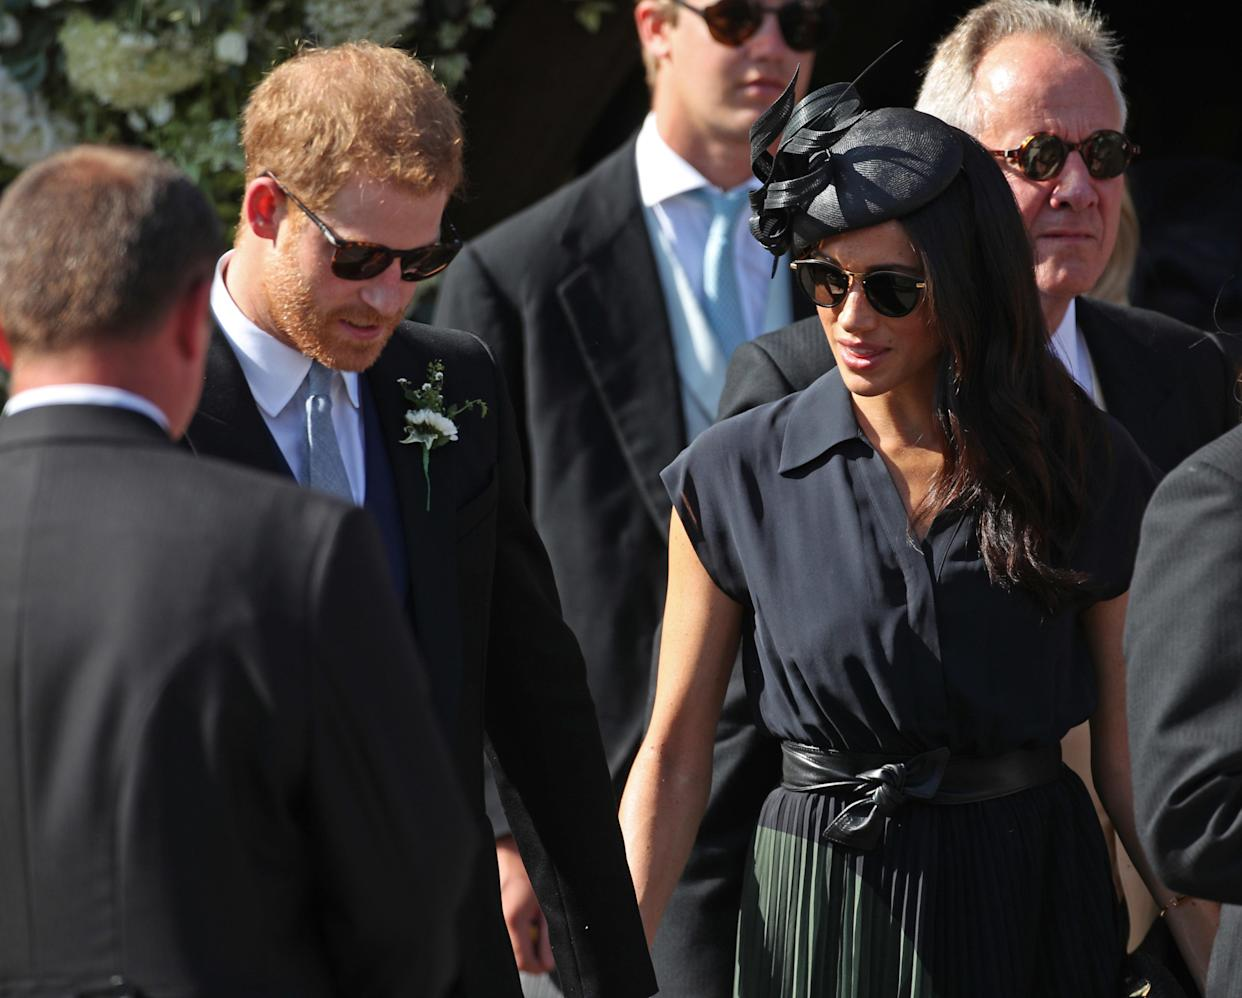 Meghan and Harry are busy performing duties elsewhere [Photo: PA]